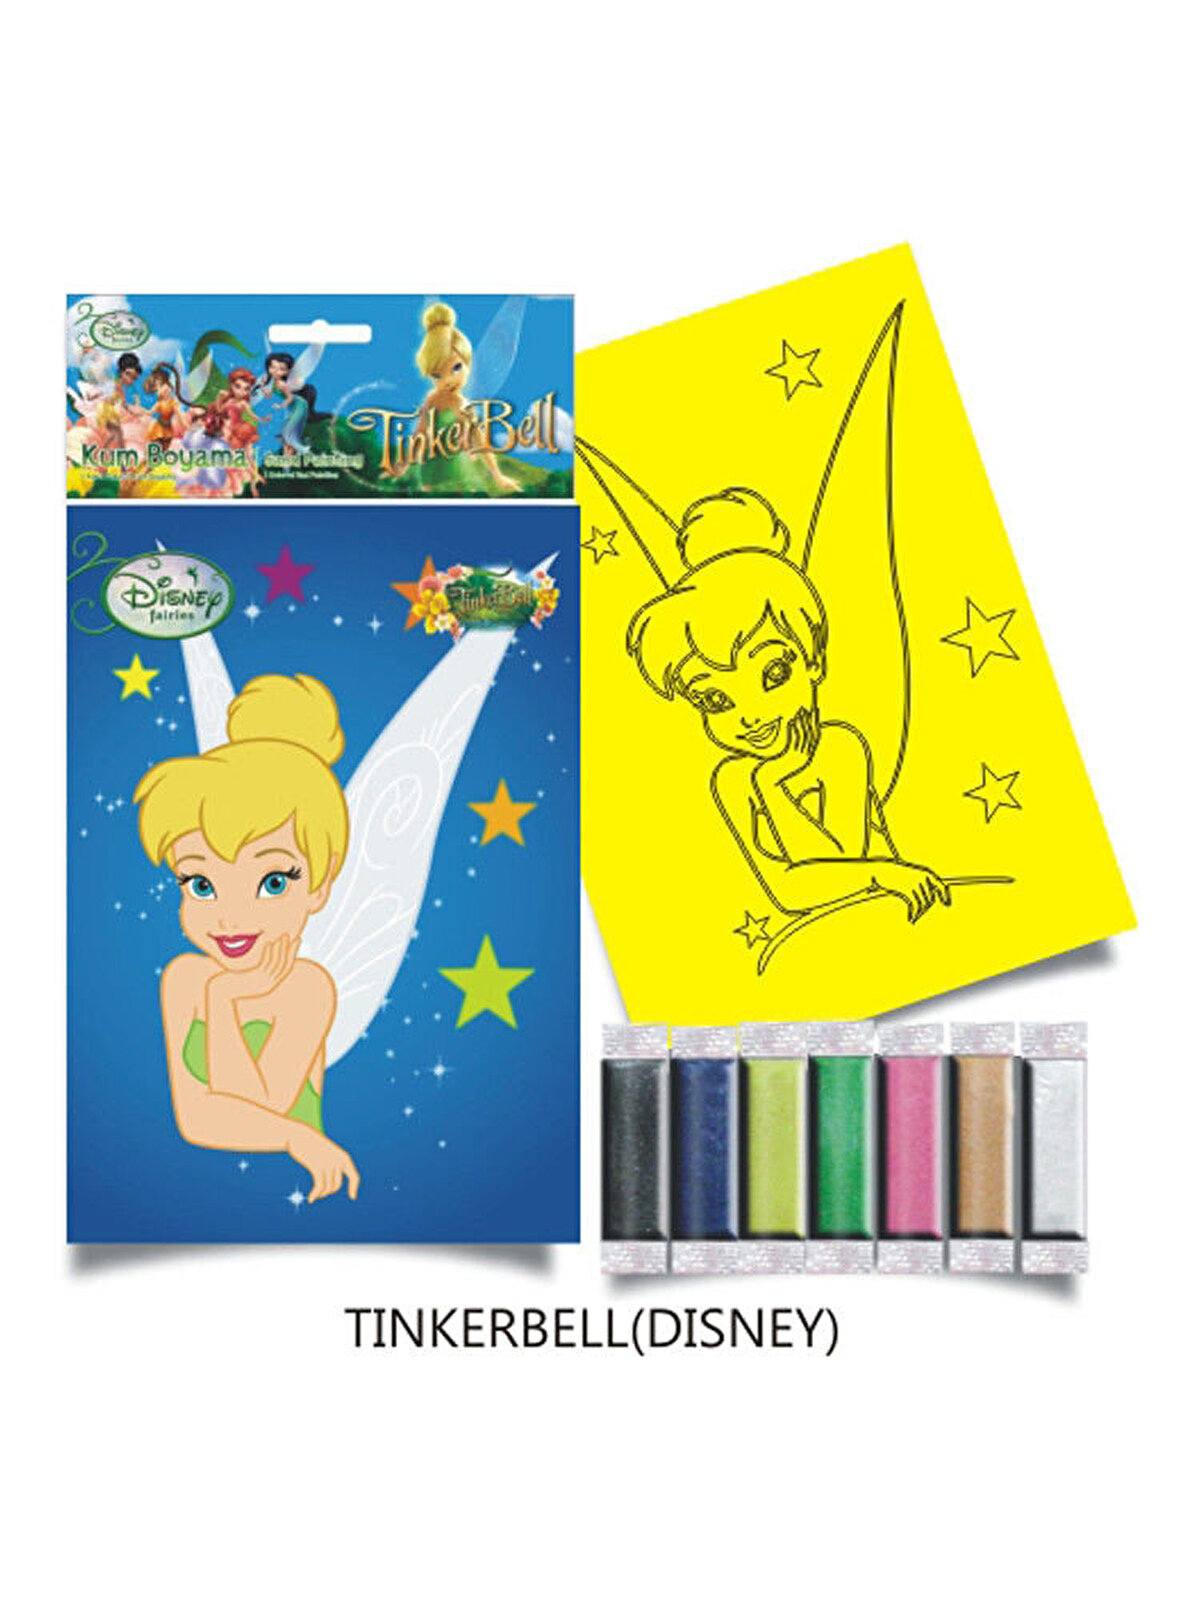 Plansa pictura nisip M, Tinker Bell